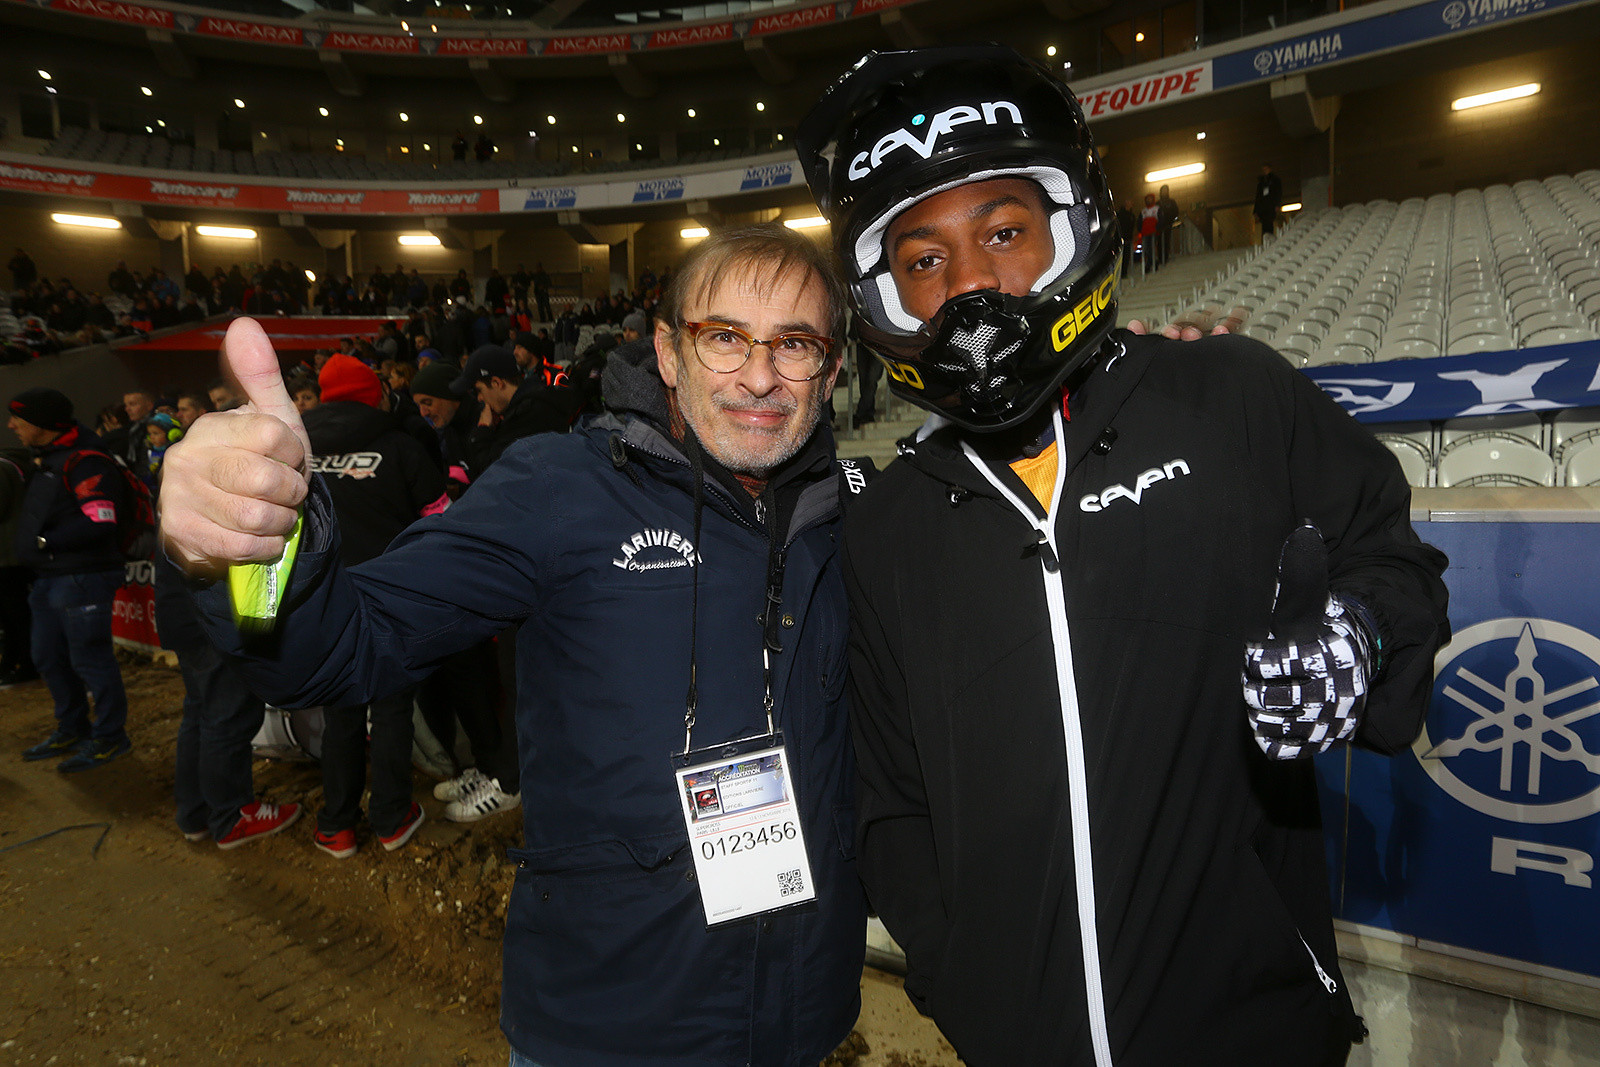 Xavier Audouard and Malcolm Stewart - Photo Gallery: Saturday at the Paris-Lille Supercross - Motocross Pictures - Vital MX